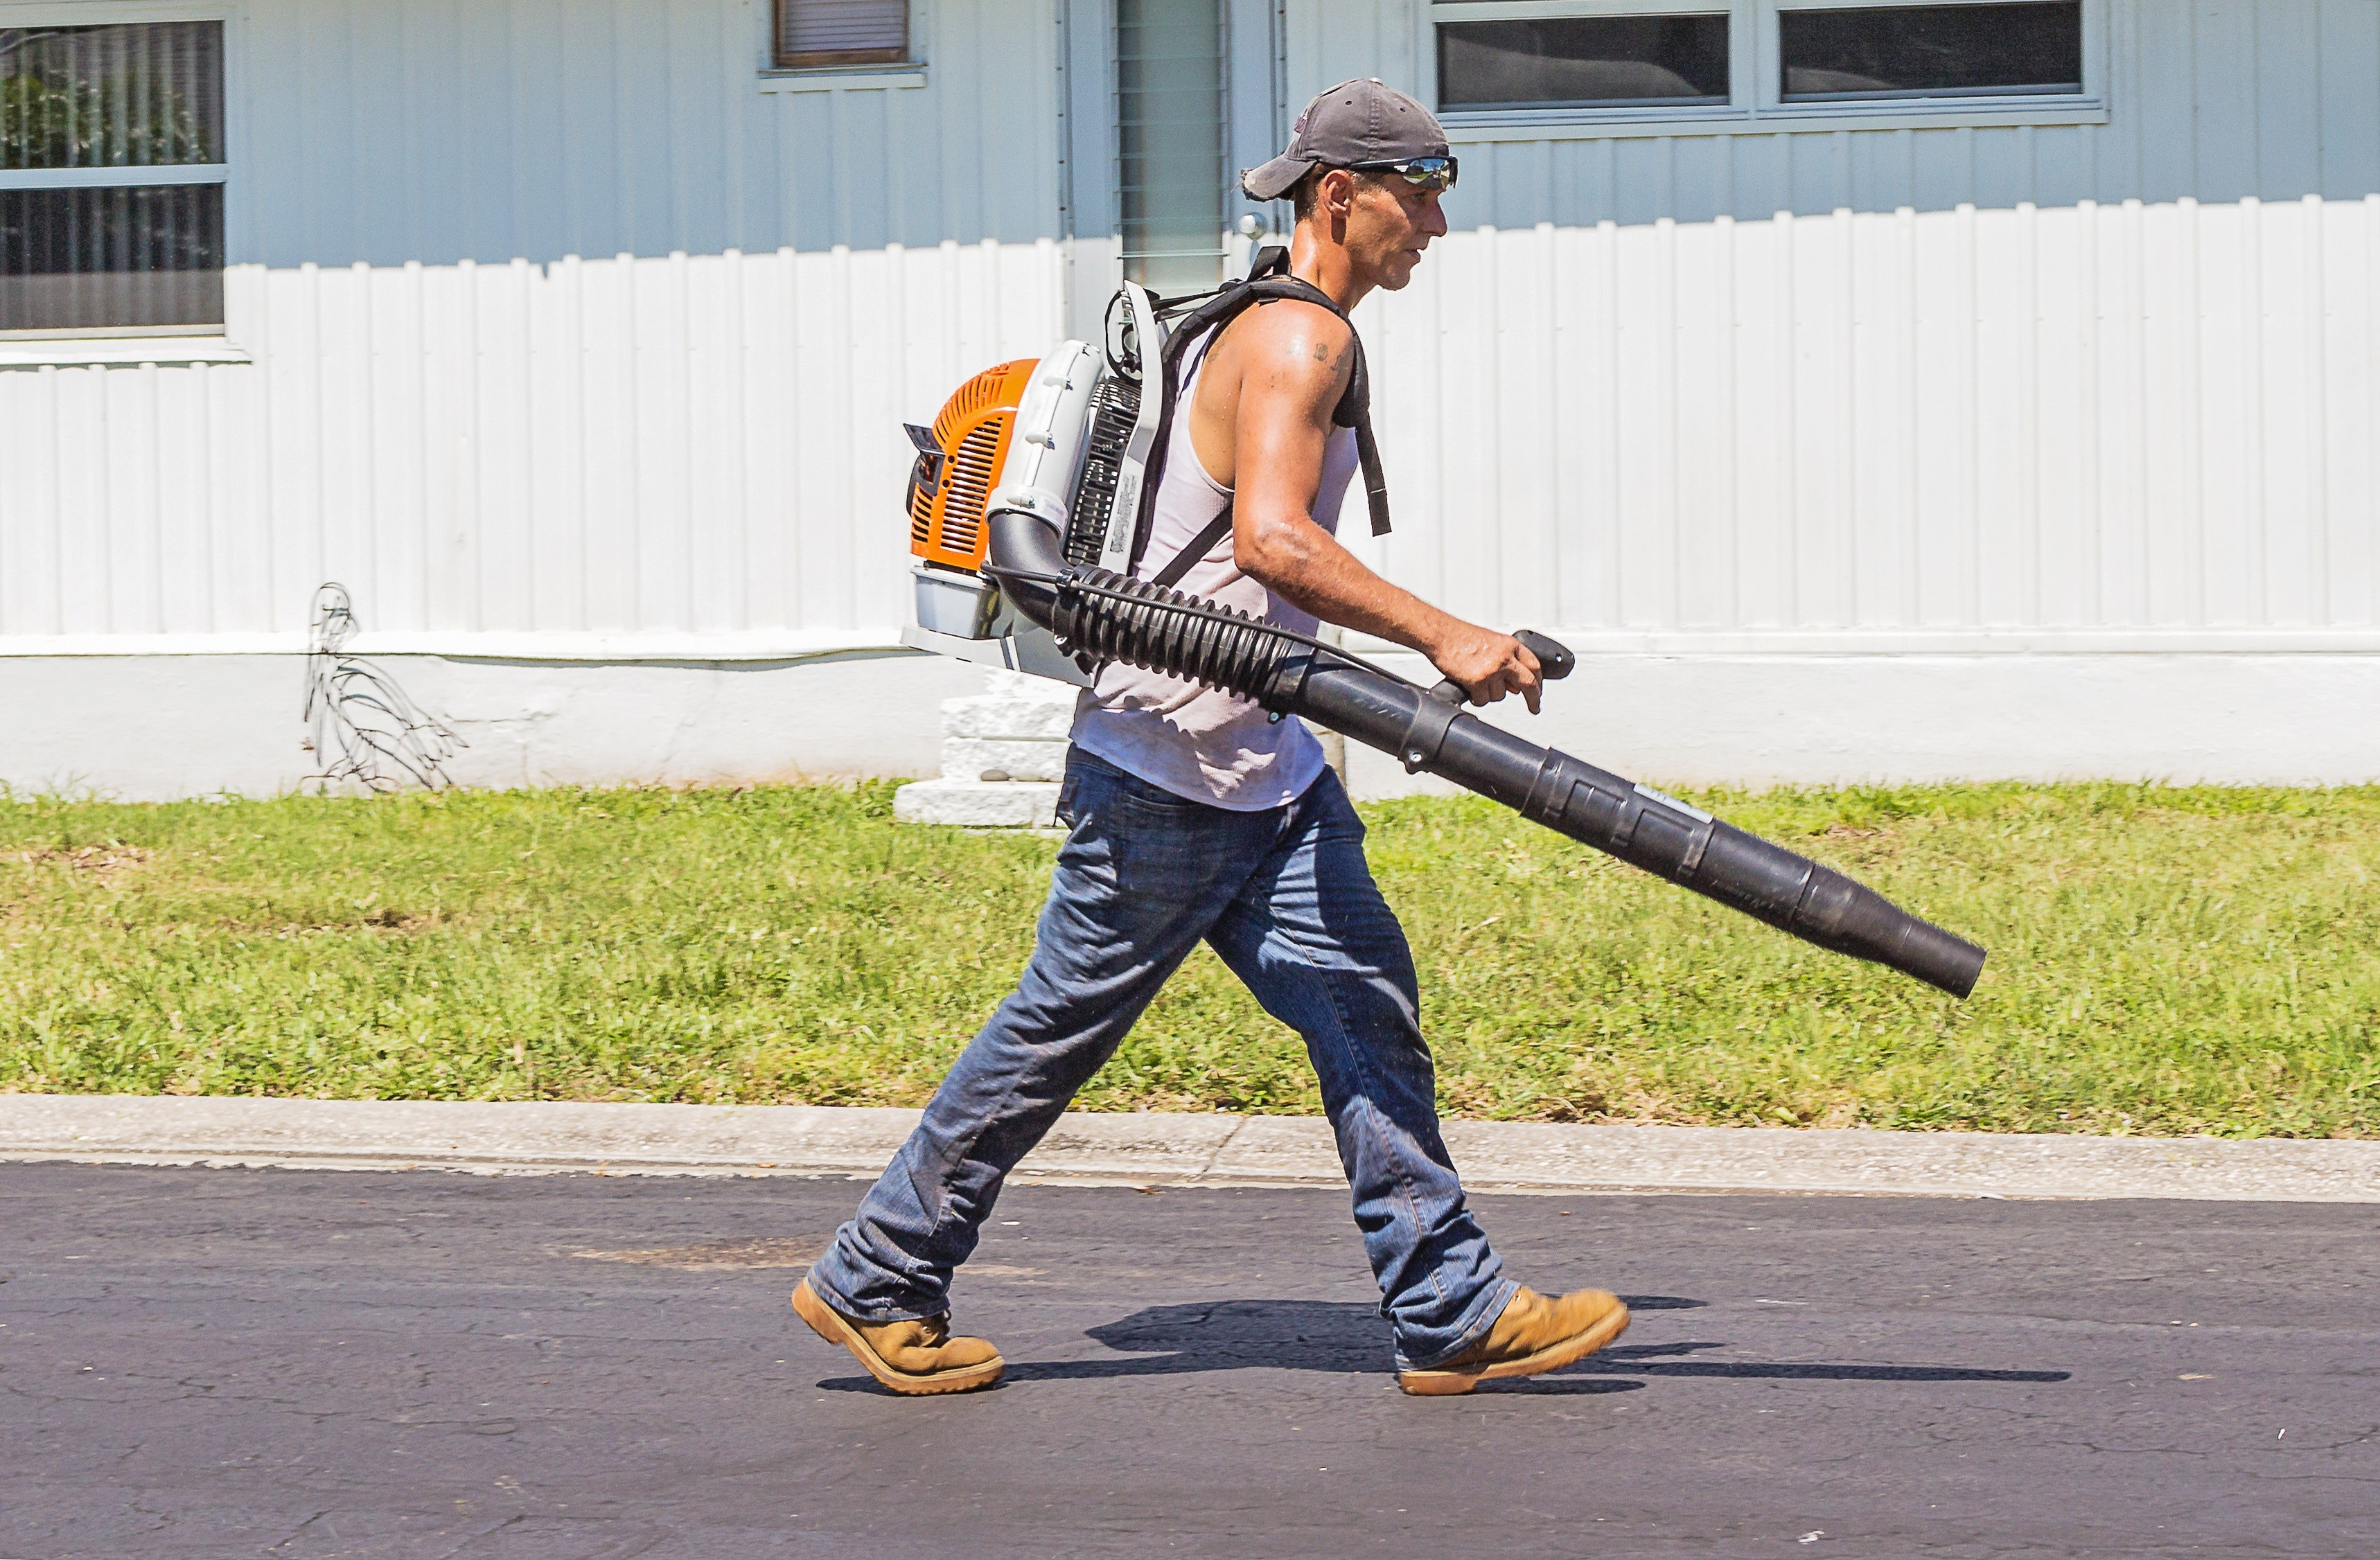 Man in White Tank Top and Blue Denim Pants With Leaf Blower Outdoors during Daytime, Road, Pavement, Shadow, Street, HQ Photo